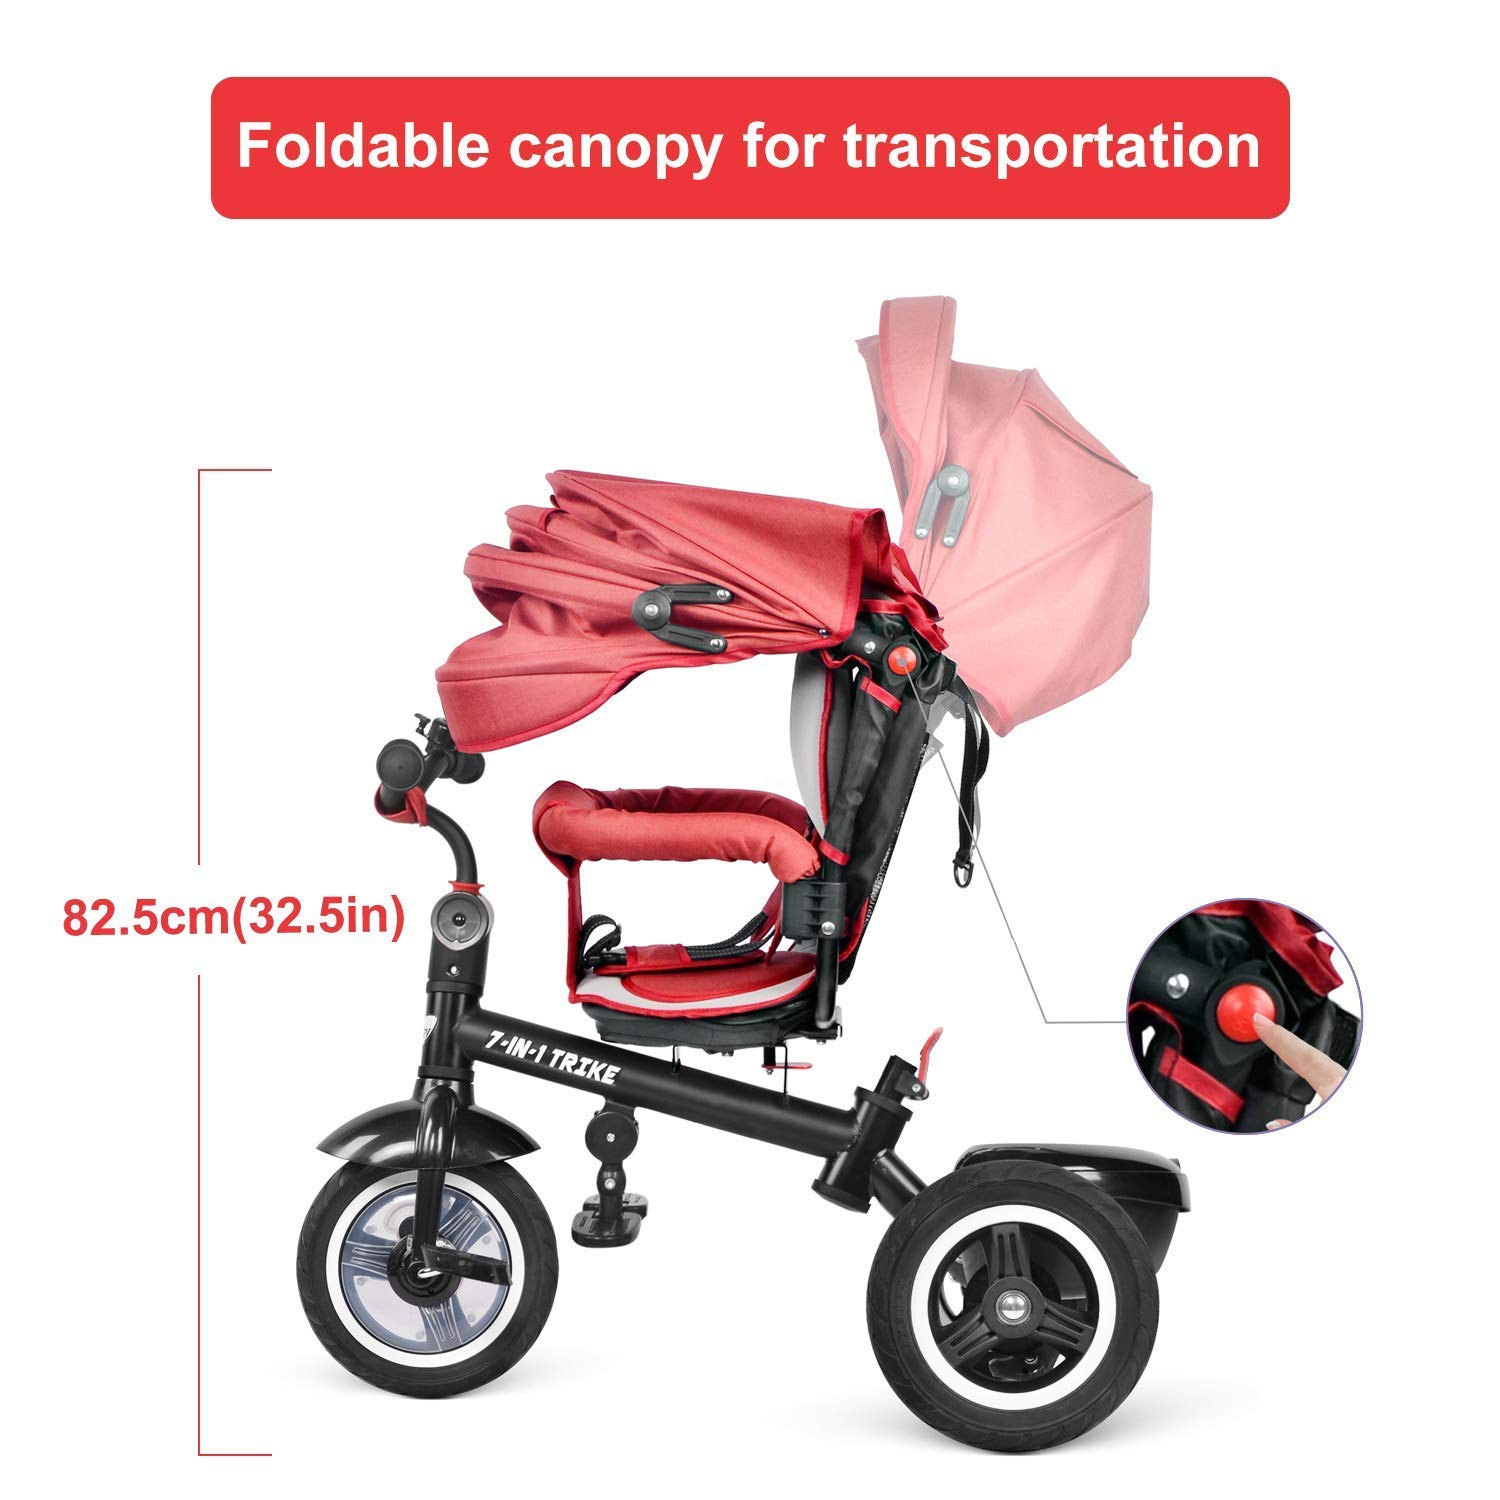 Reversible Seat with Pedal for 6 Months to 6 Years besrey Tricycle Kids Trike Baby Tricycle Buggy Stroller Kids Trike Push Chair 7 in 1